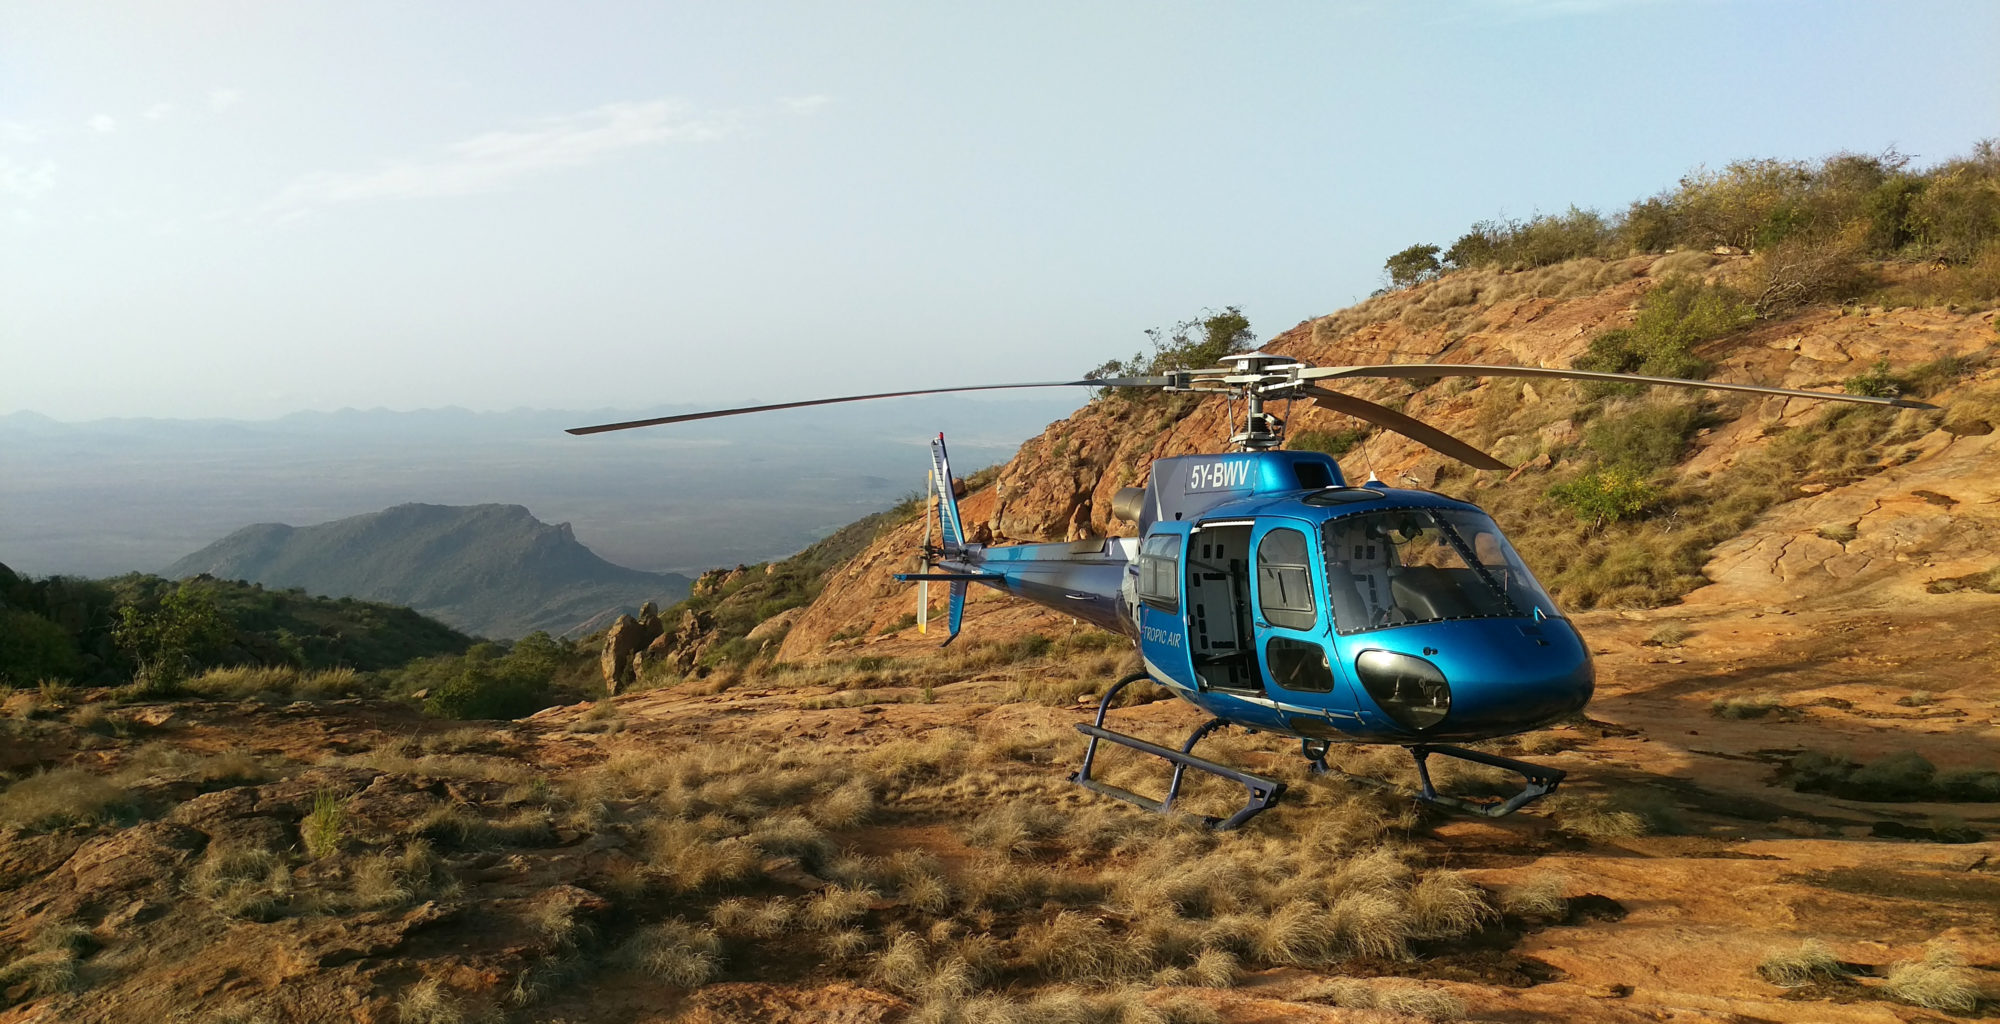 Nothern Kenya Heli Tropic Air